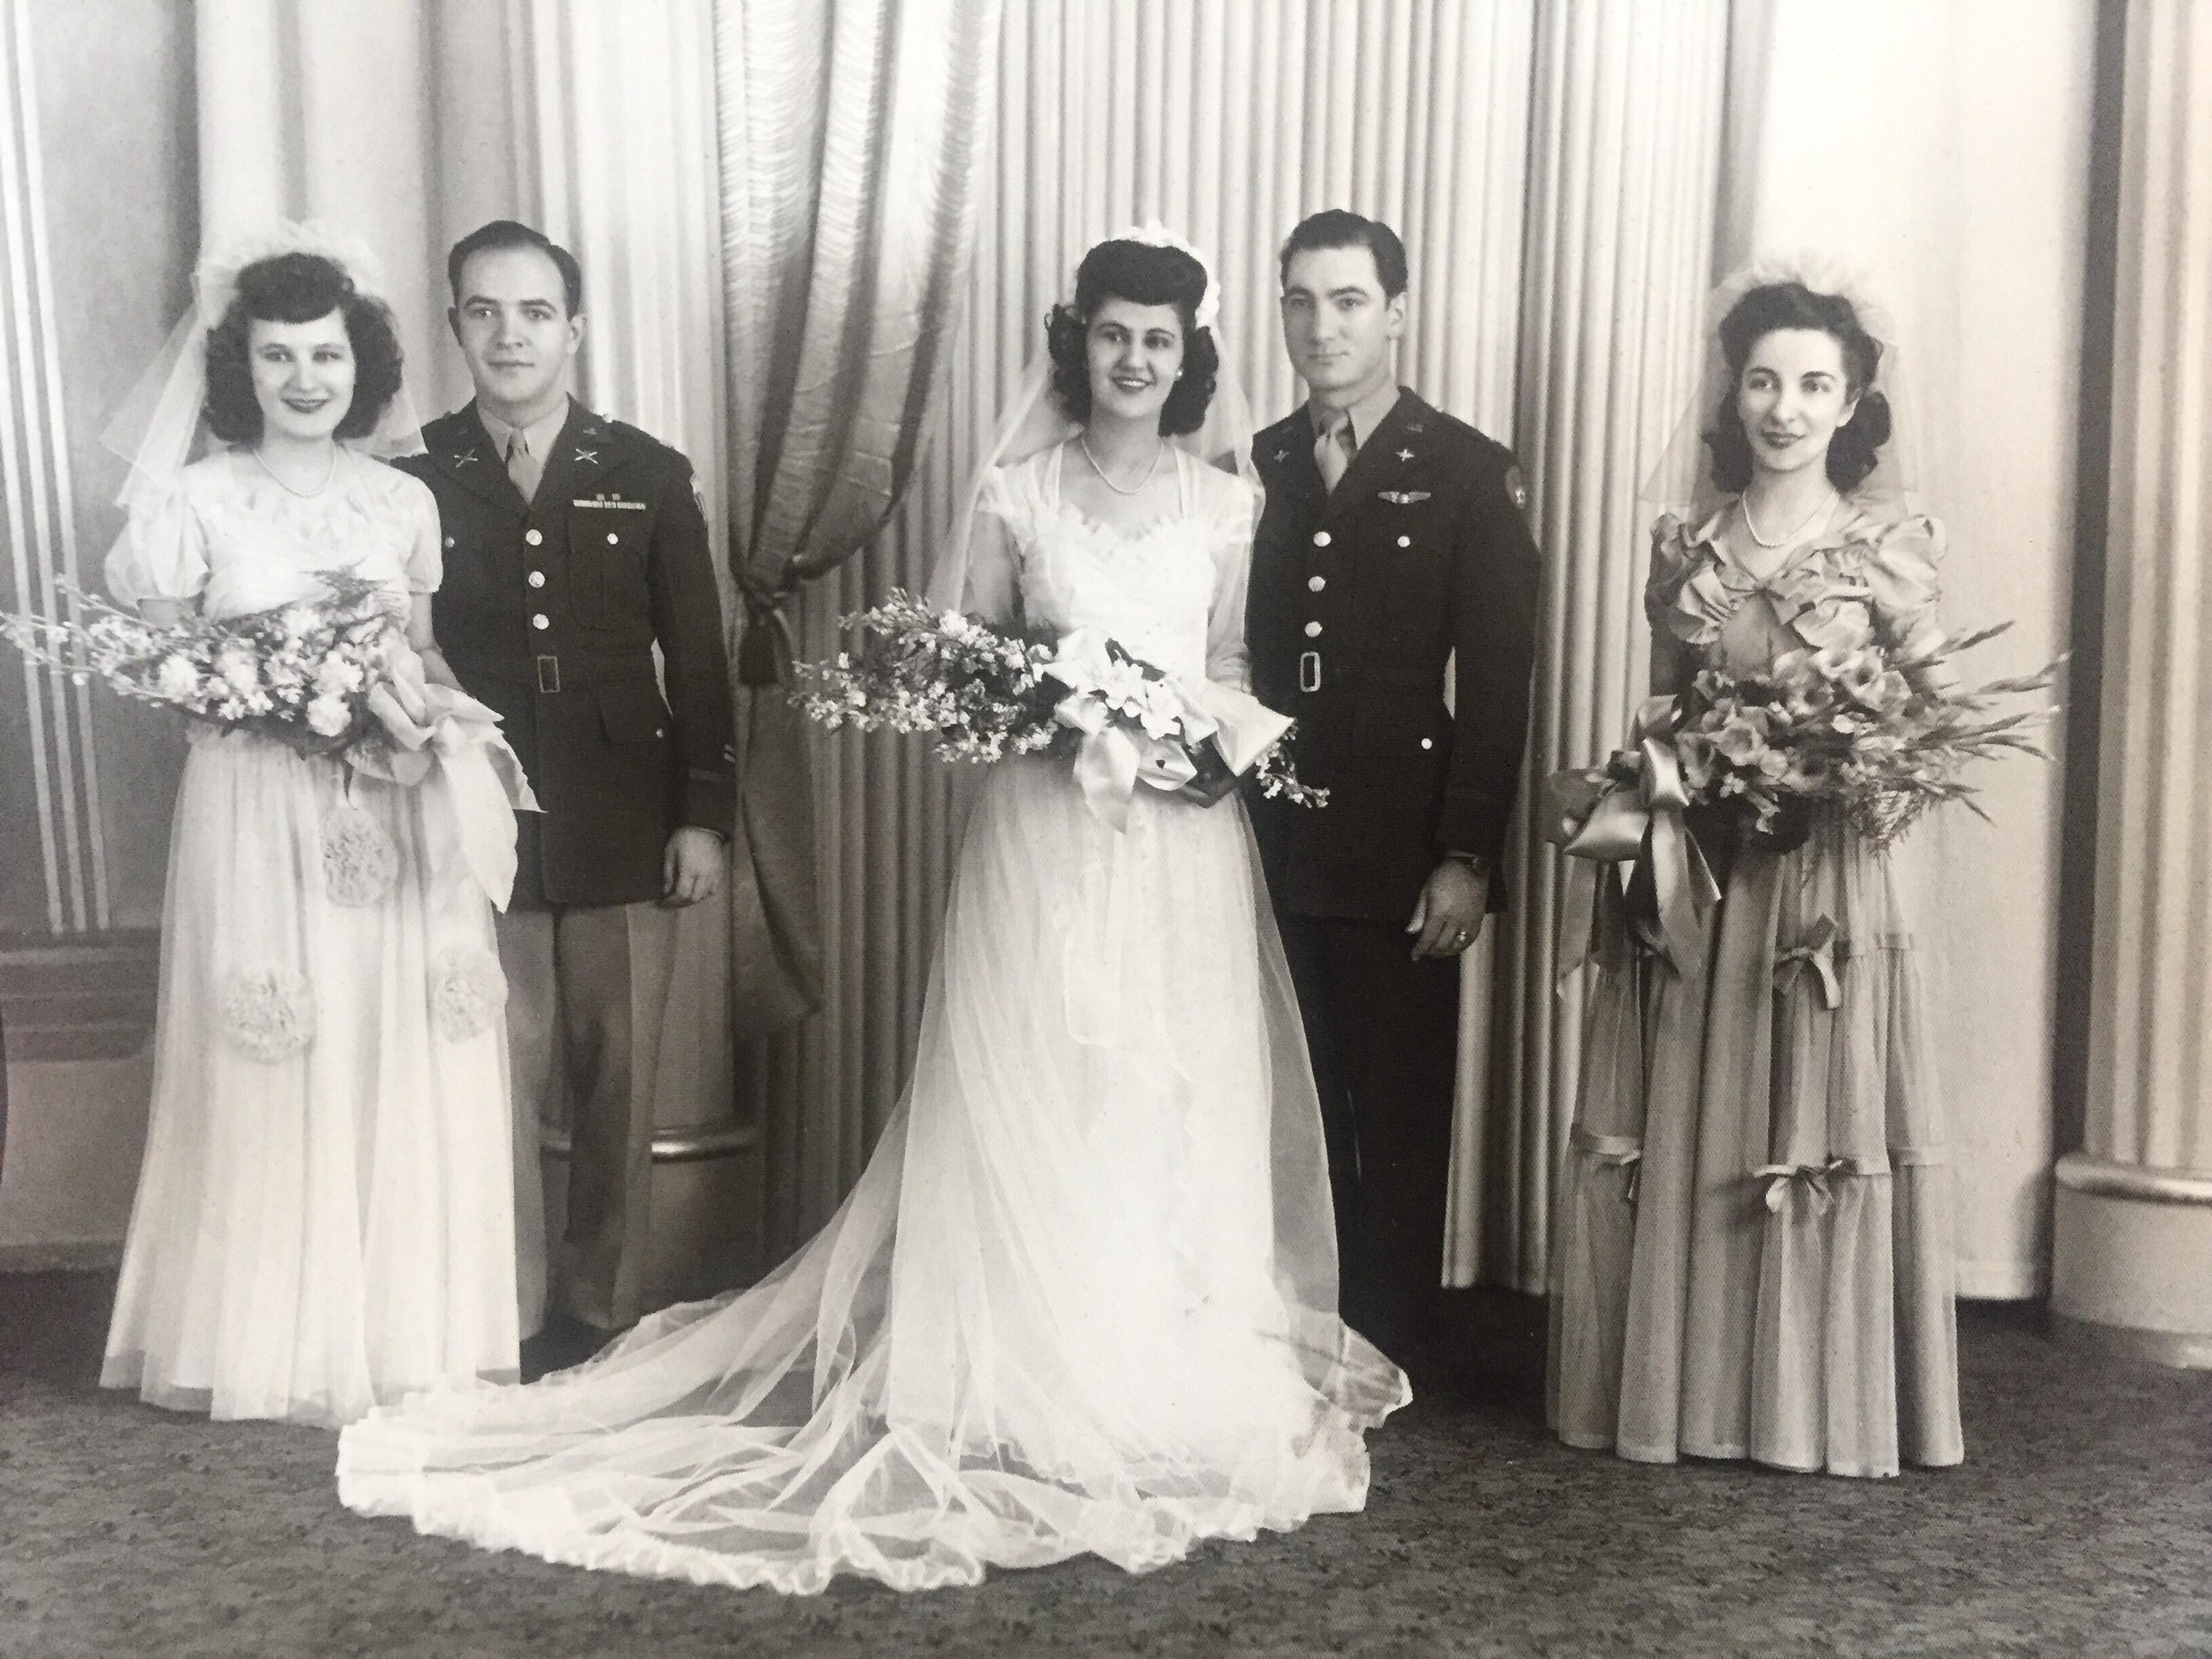 Wedding photo of Grace Elissavitis and Nicholas T. Mitchell - 1948